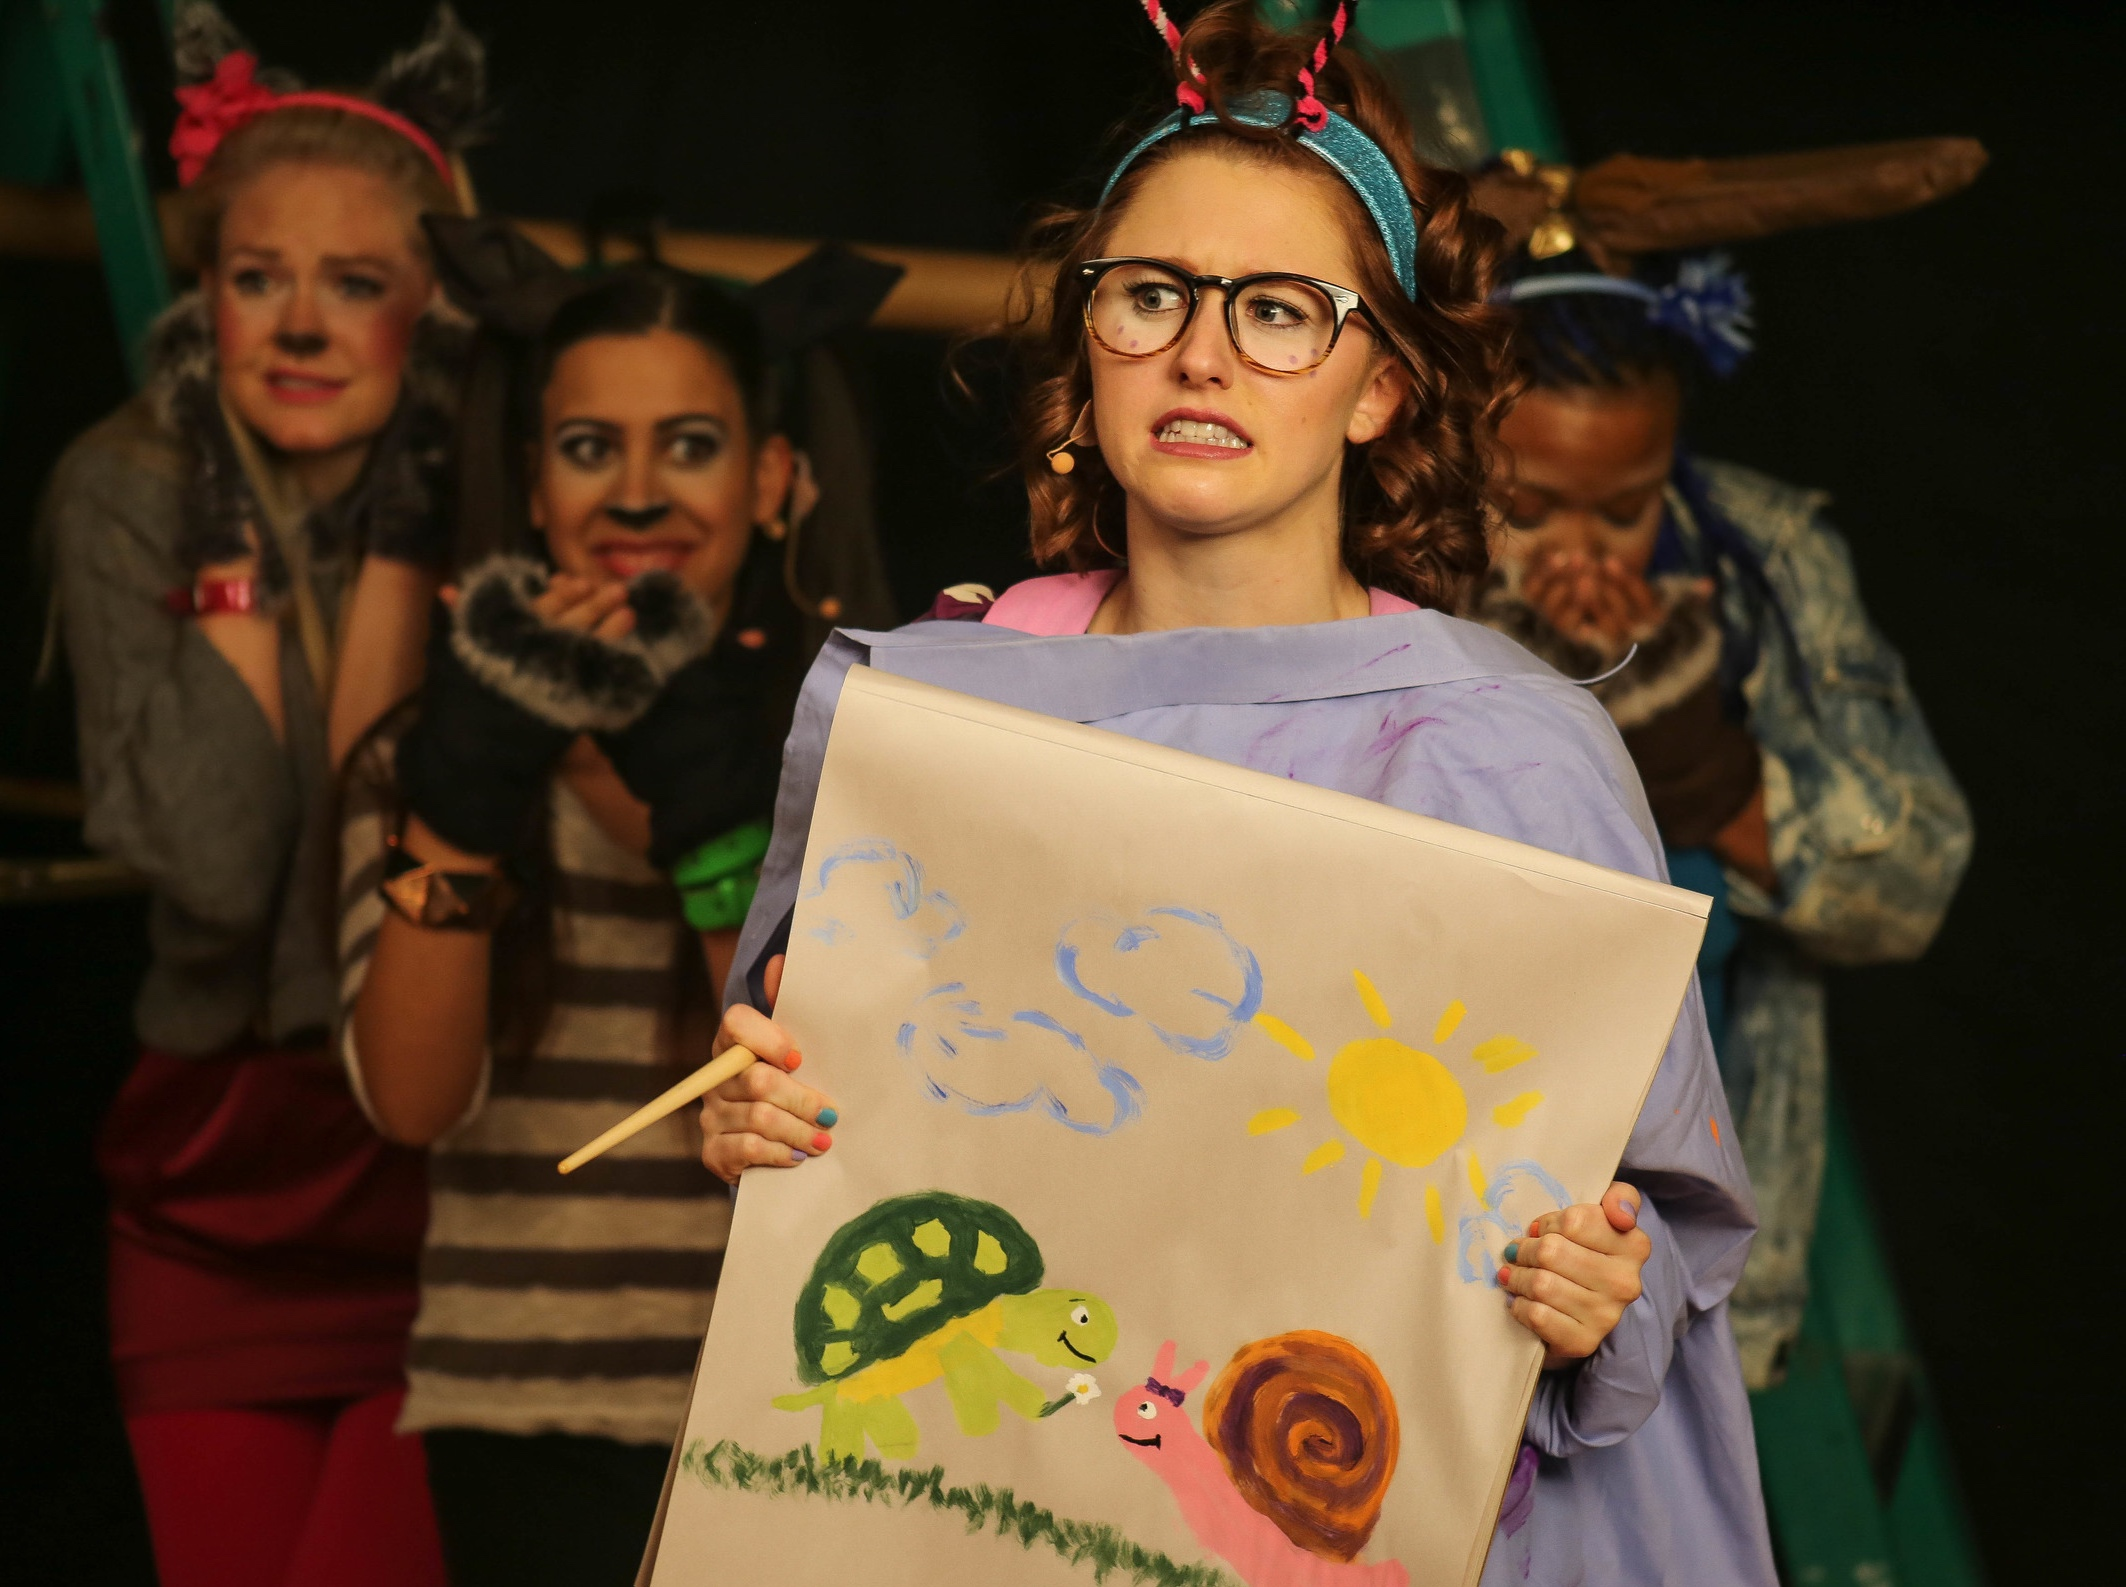 Tortoise and Hare - Emily is teaming up with NCTC bringing theater to young audiences. Click below to see B-Roll of her portrayal as Cindy the Snail.